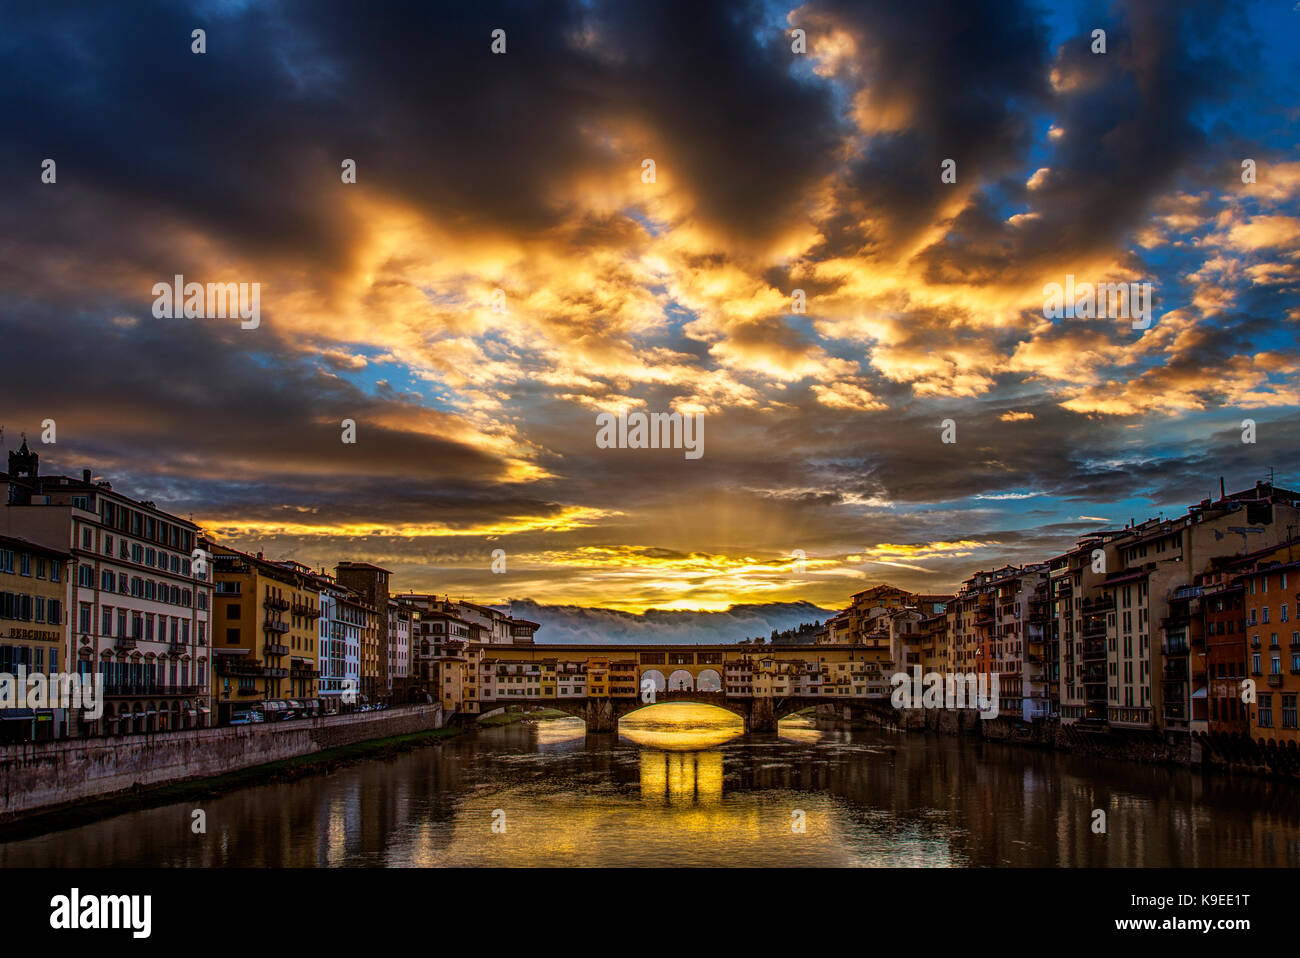 Storm clouds clear at sunrise at the Ponte Vecchio in Florence, Italy - Stock Image